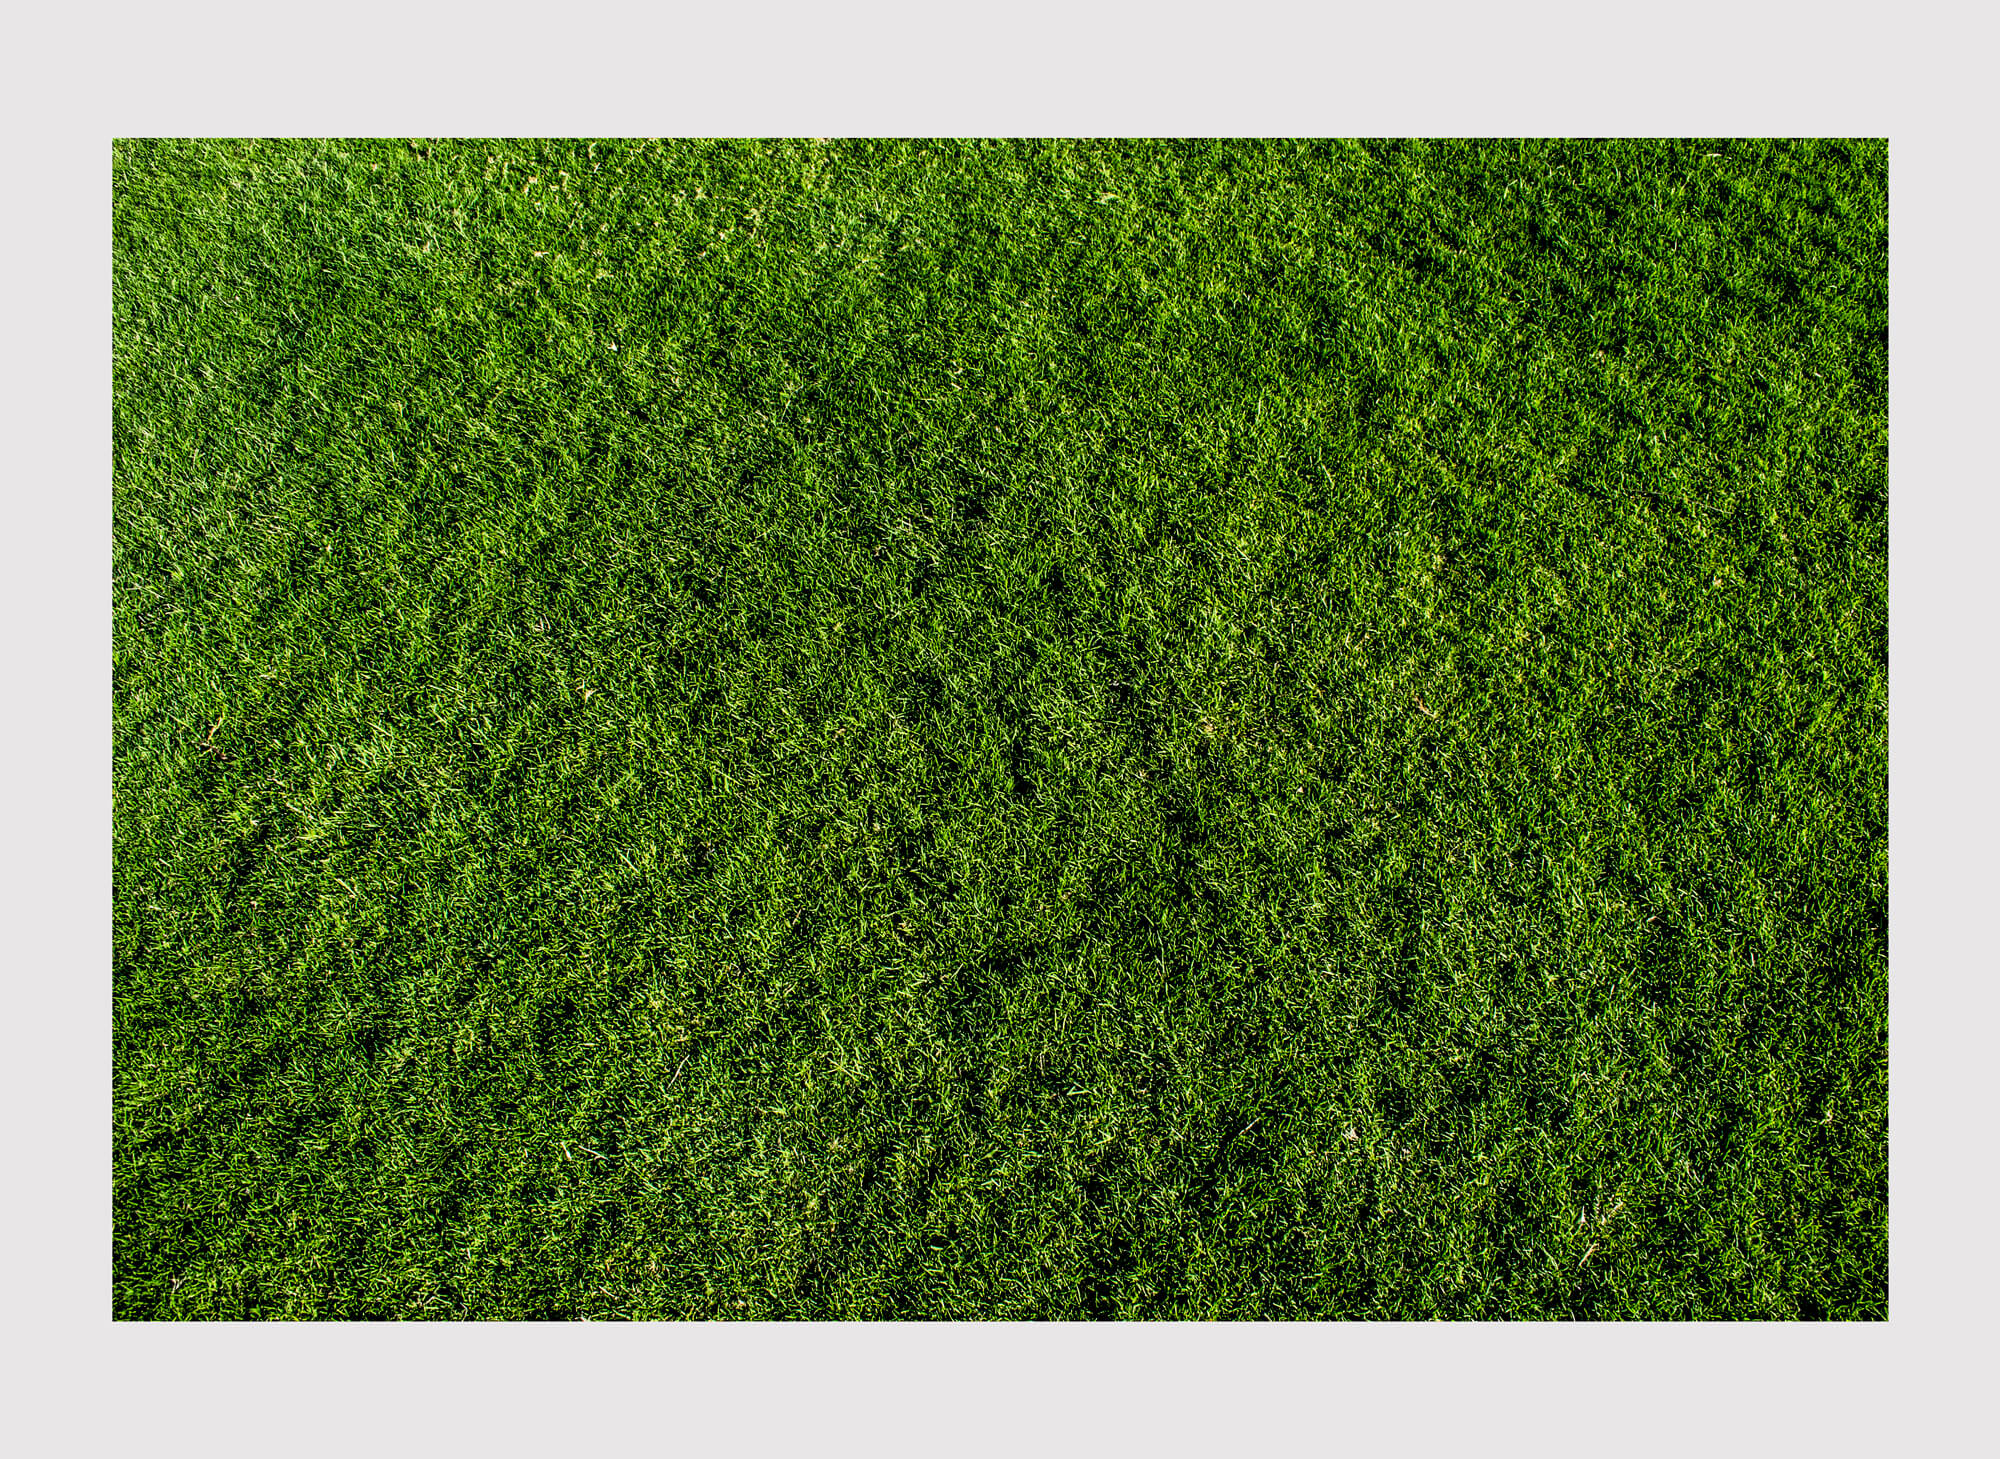 Ethan Beswick Mirari green grass in Dubai photography the south west collective